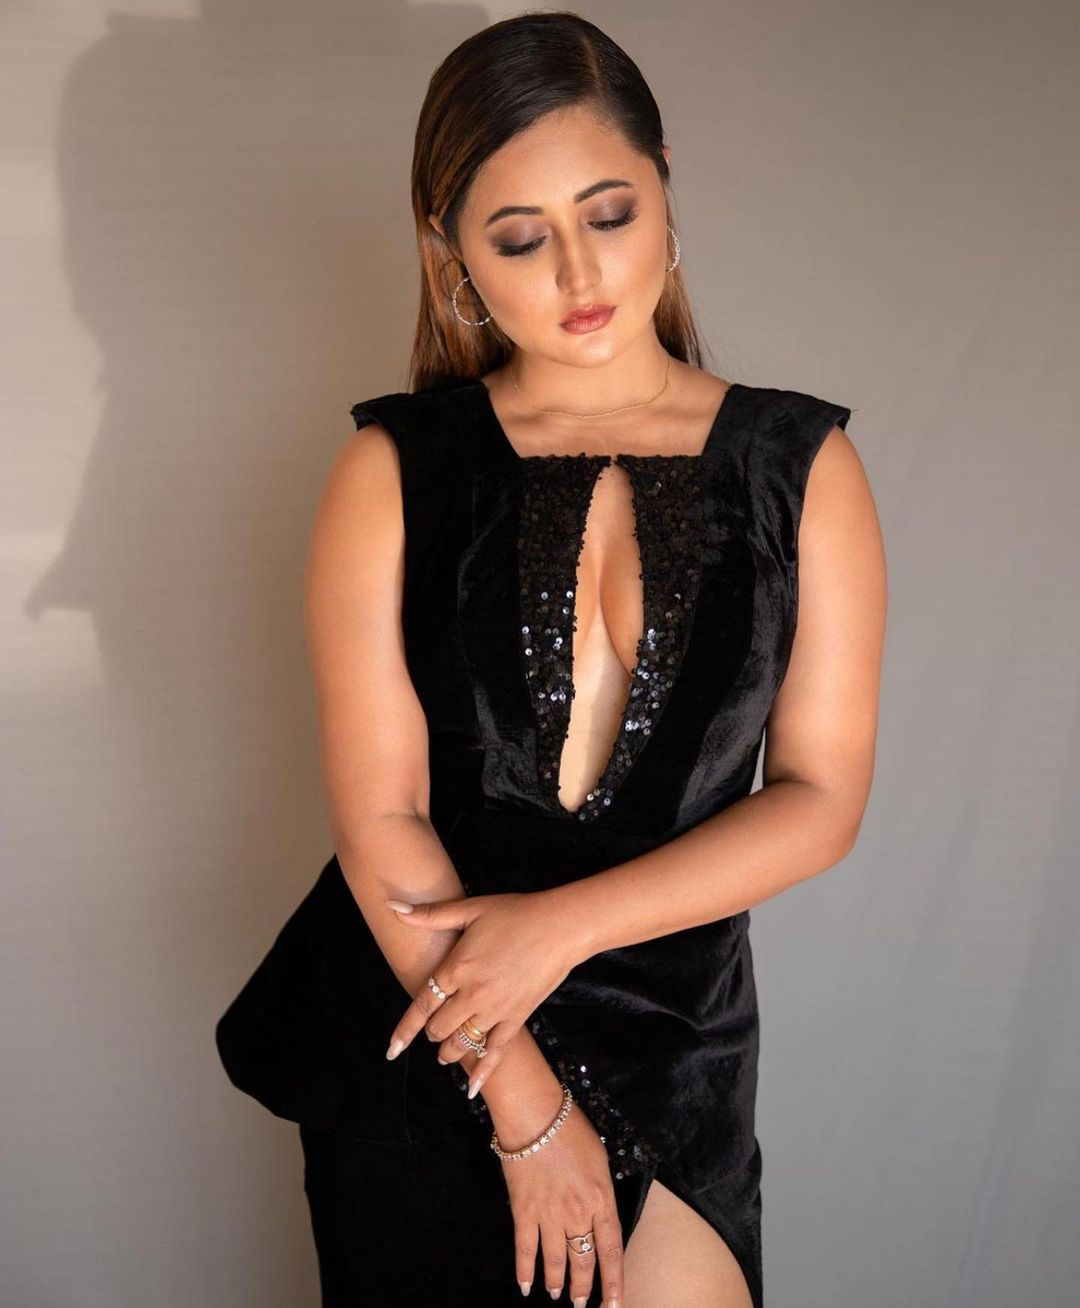 rashmi-deshai-black-bold-look-india